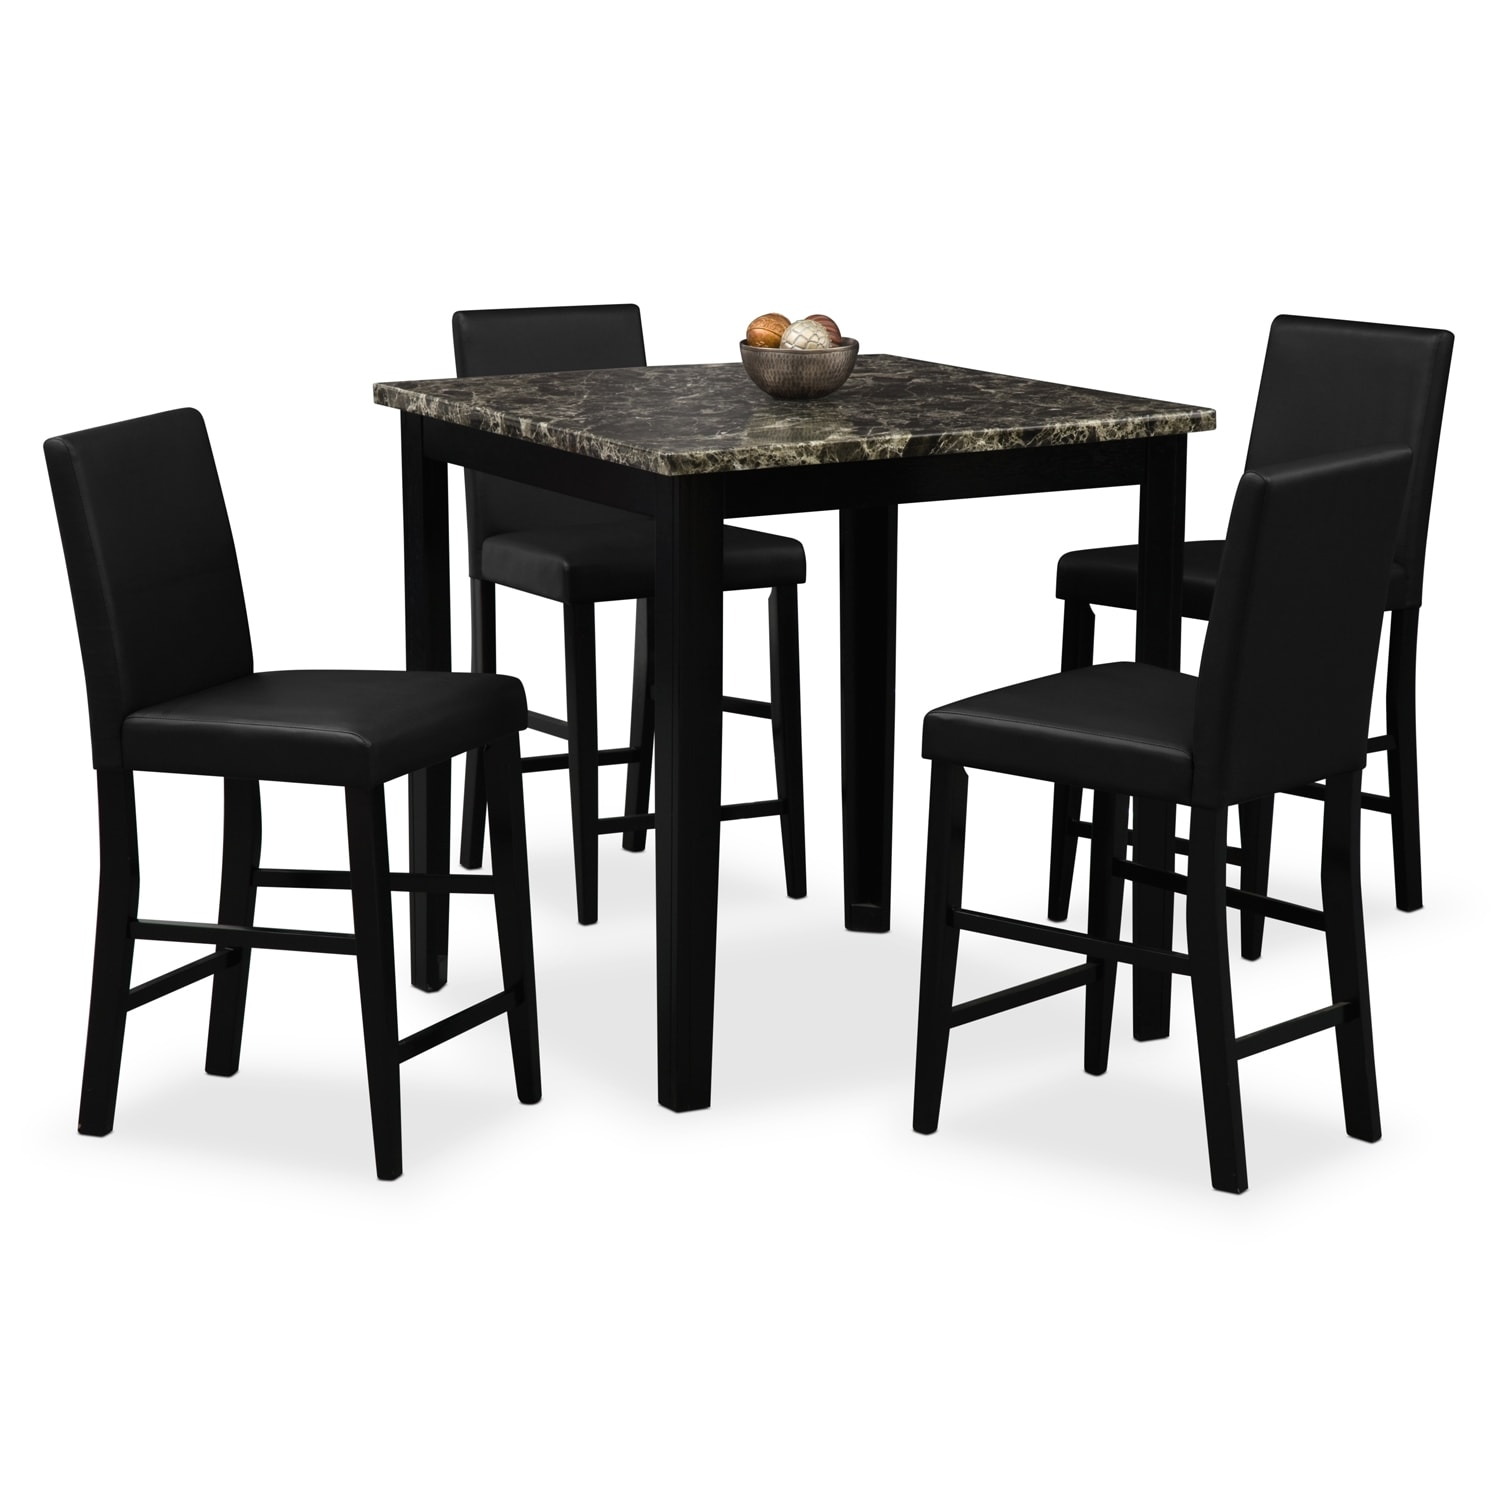 Shadow ii 5 pc counter height dinette american for Signature furniture